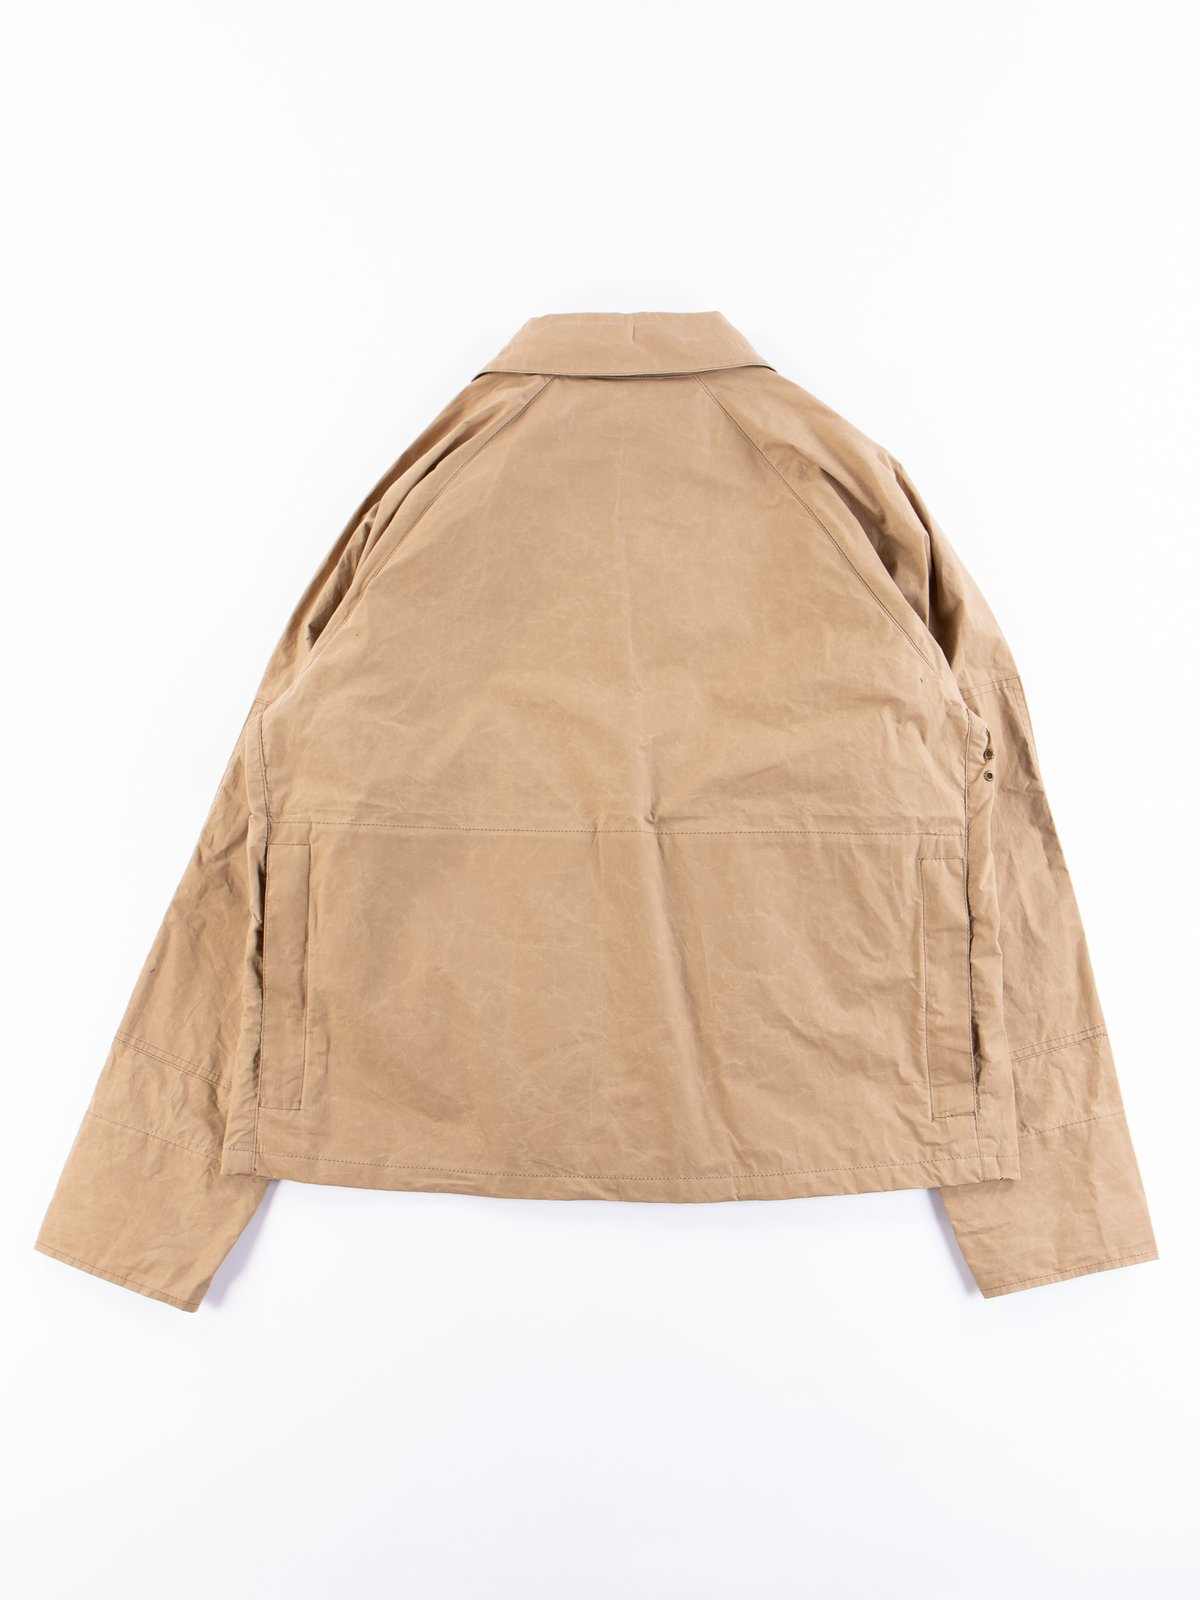 Sand Unlined Graham Jacket - Image 6